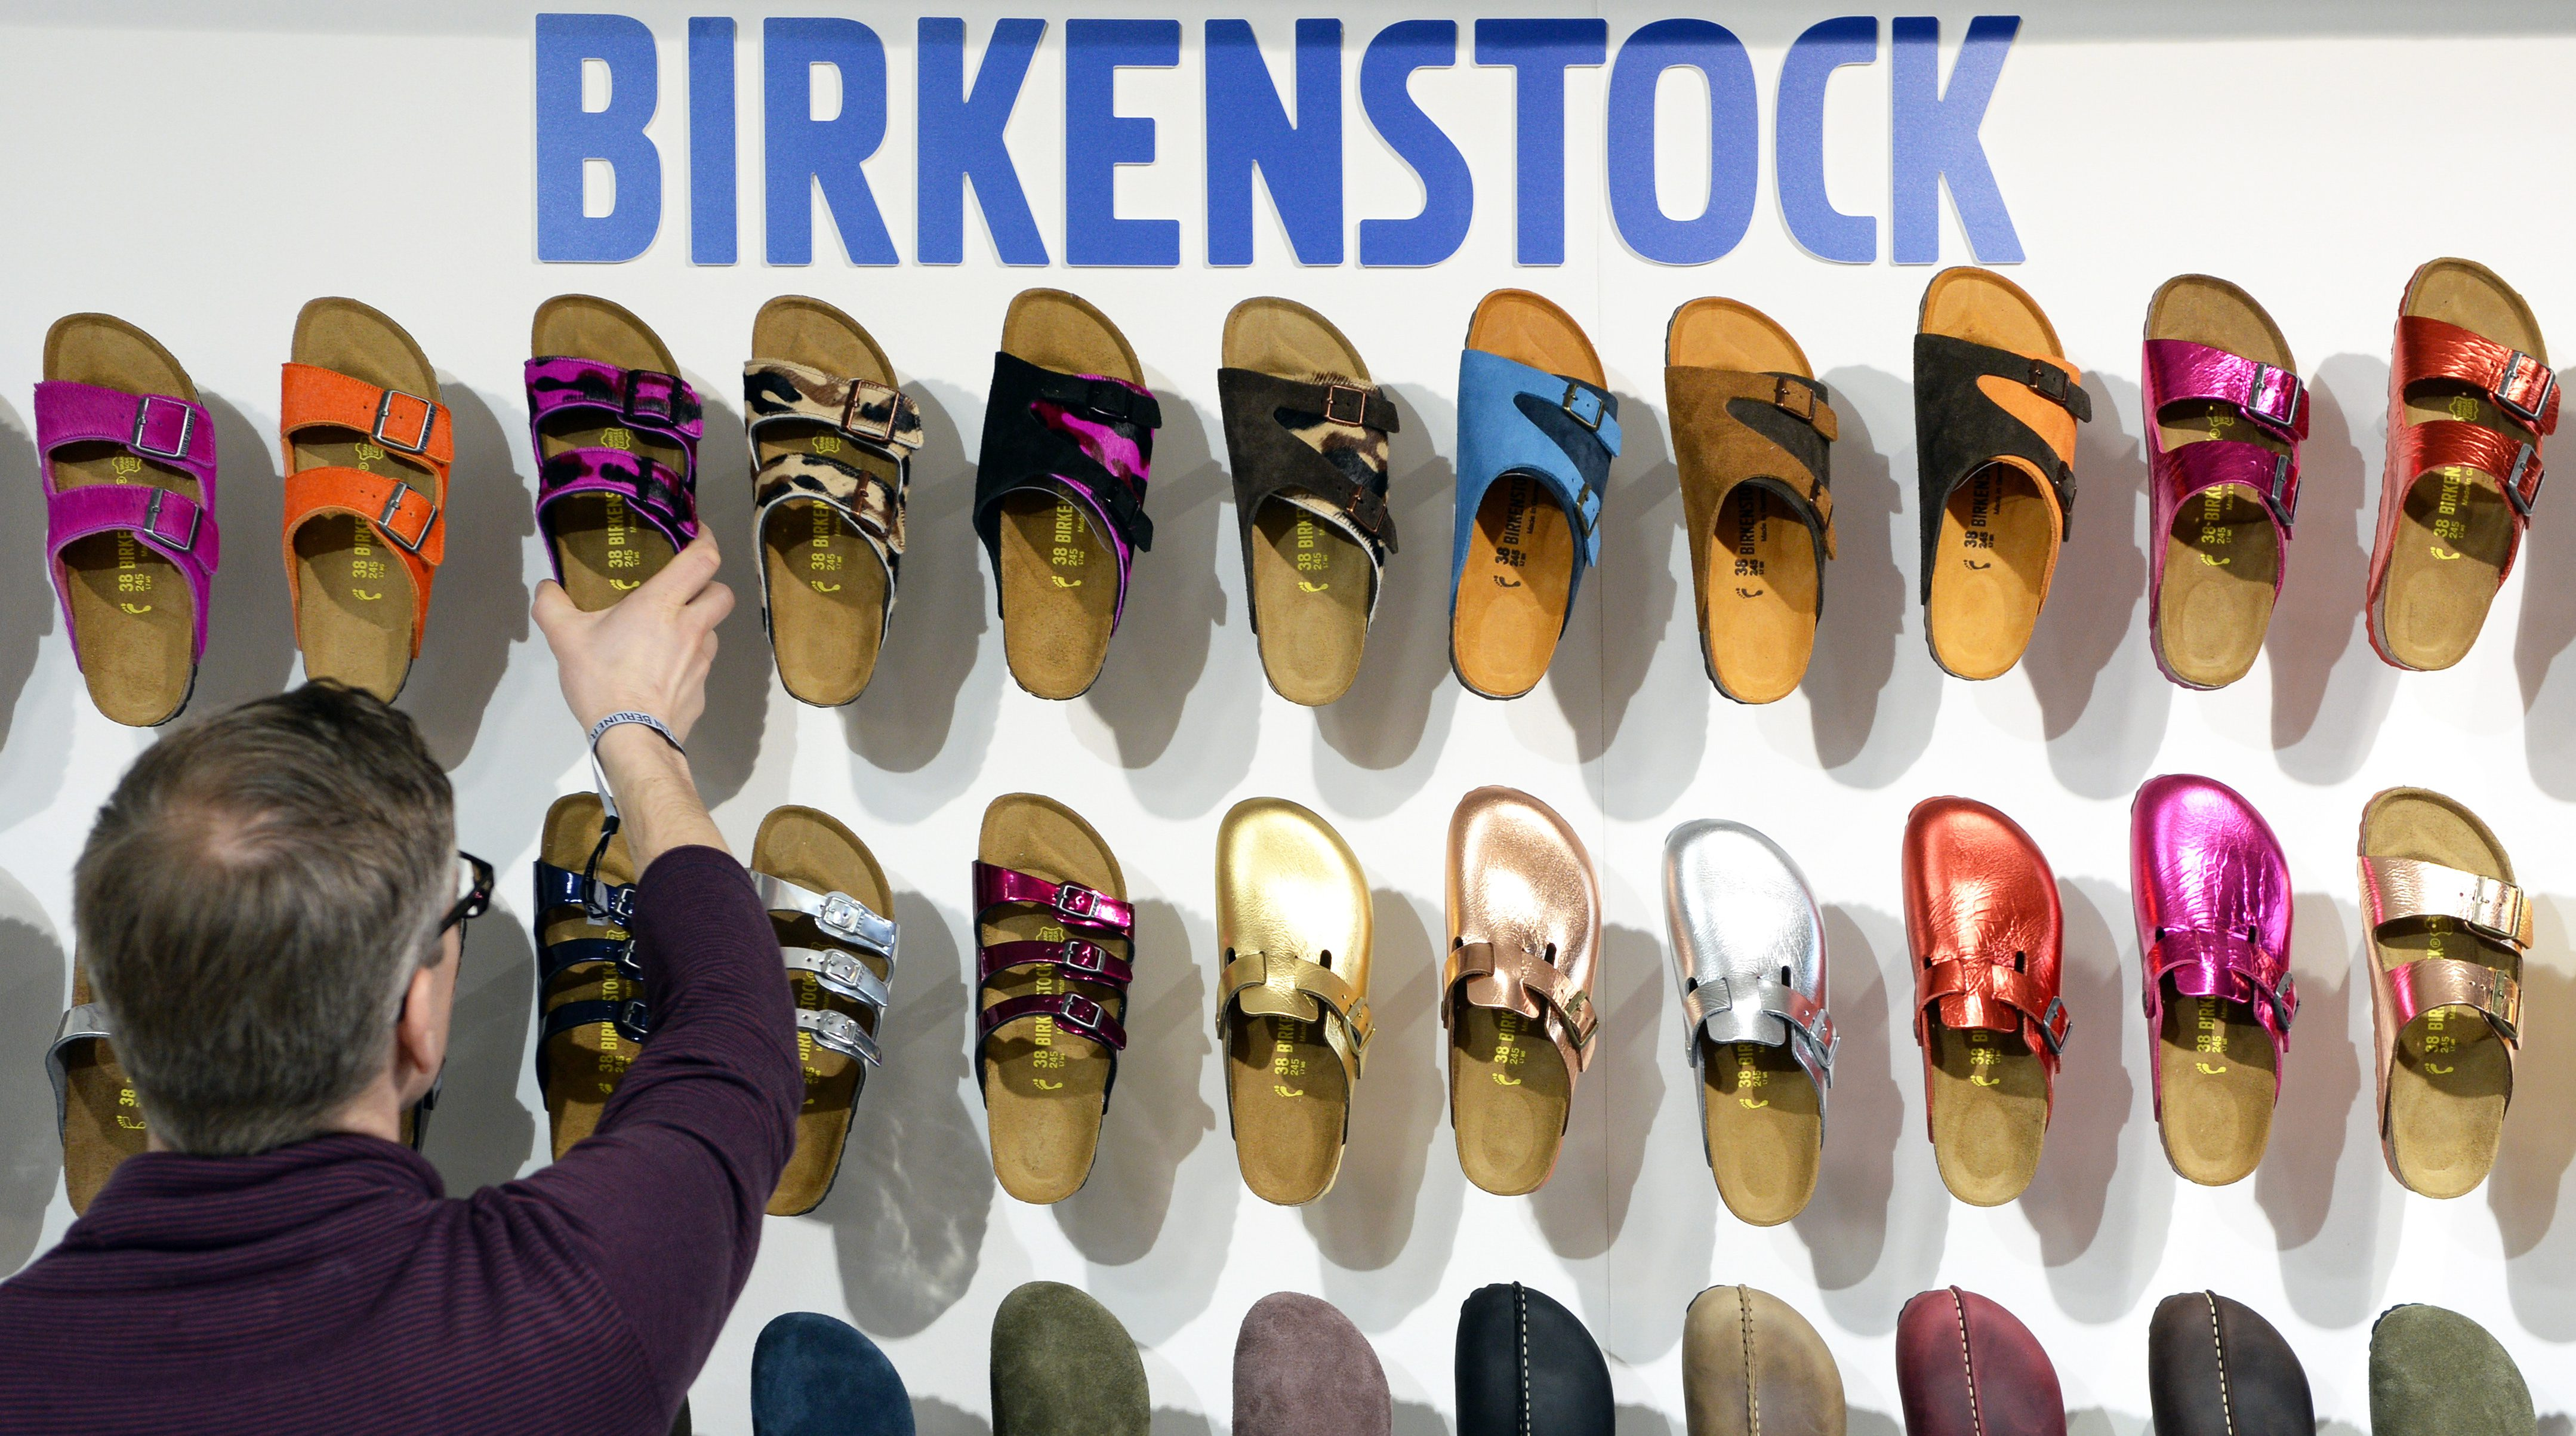 A employee arranges shoes of German label Birkenstock during the fashion fair 'Bread & Butter' in the former Tempelhof airport in Berlin, Germany, 14 January 2014. 'B&B' takes place during the Berlin Fashion Week that presents the Autumn/Winter 2014/2015 collections and runs from 11 to 14 January. EPA/SOEREN STACHE